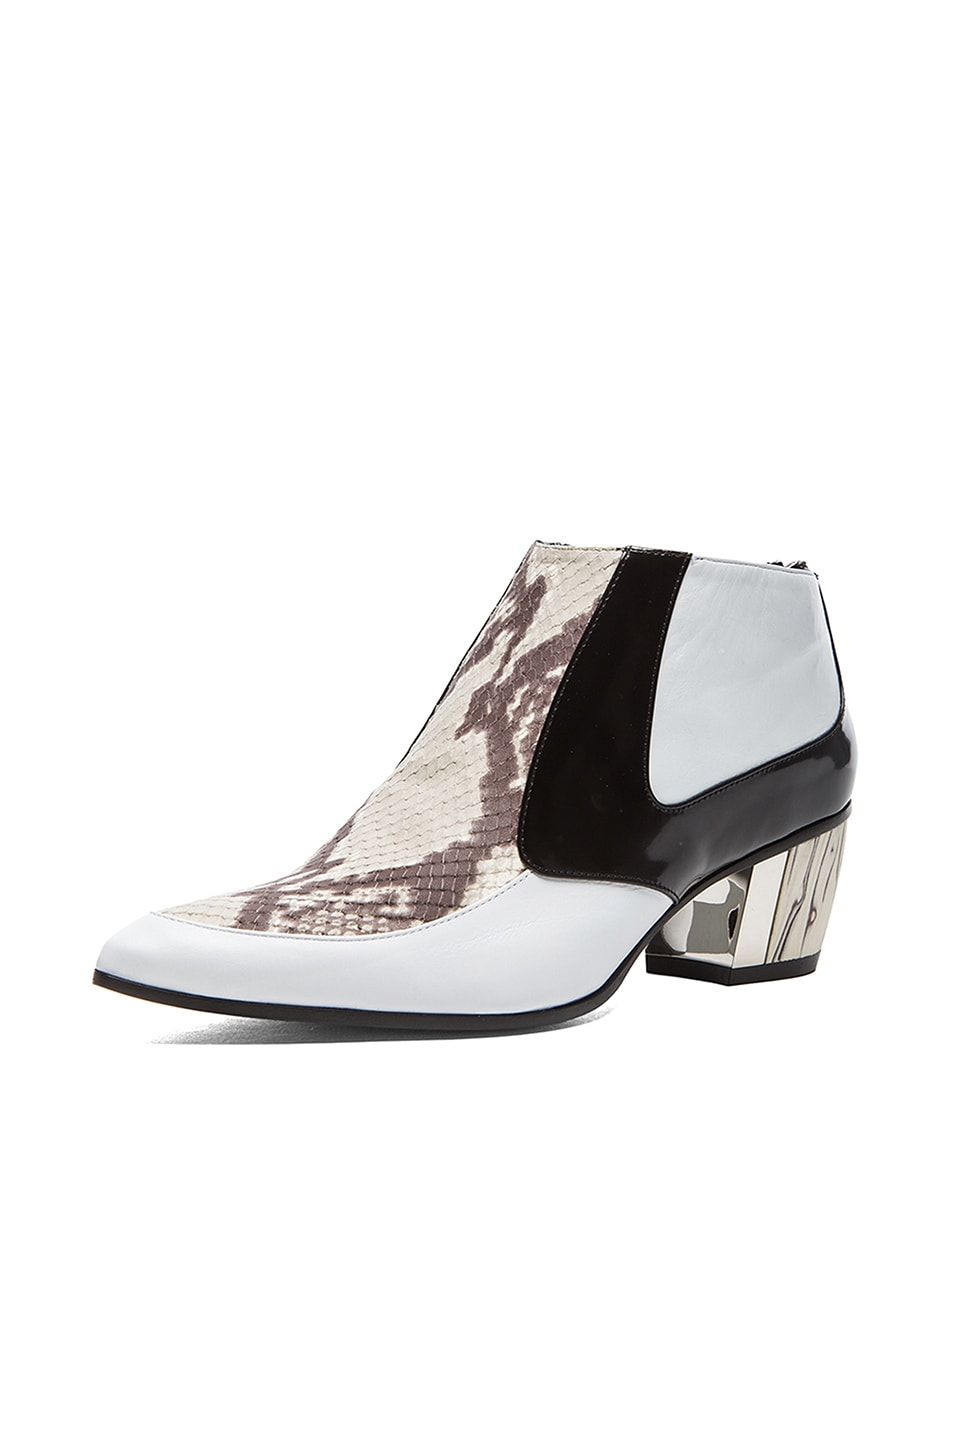 Image 2 of Rodarte Snakeskin Embossed Leather Booties in White, Black, & Grey